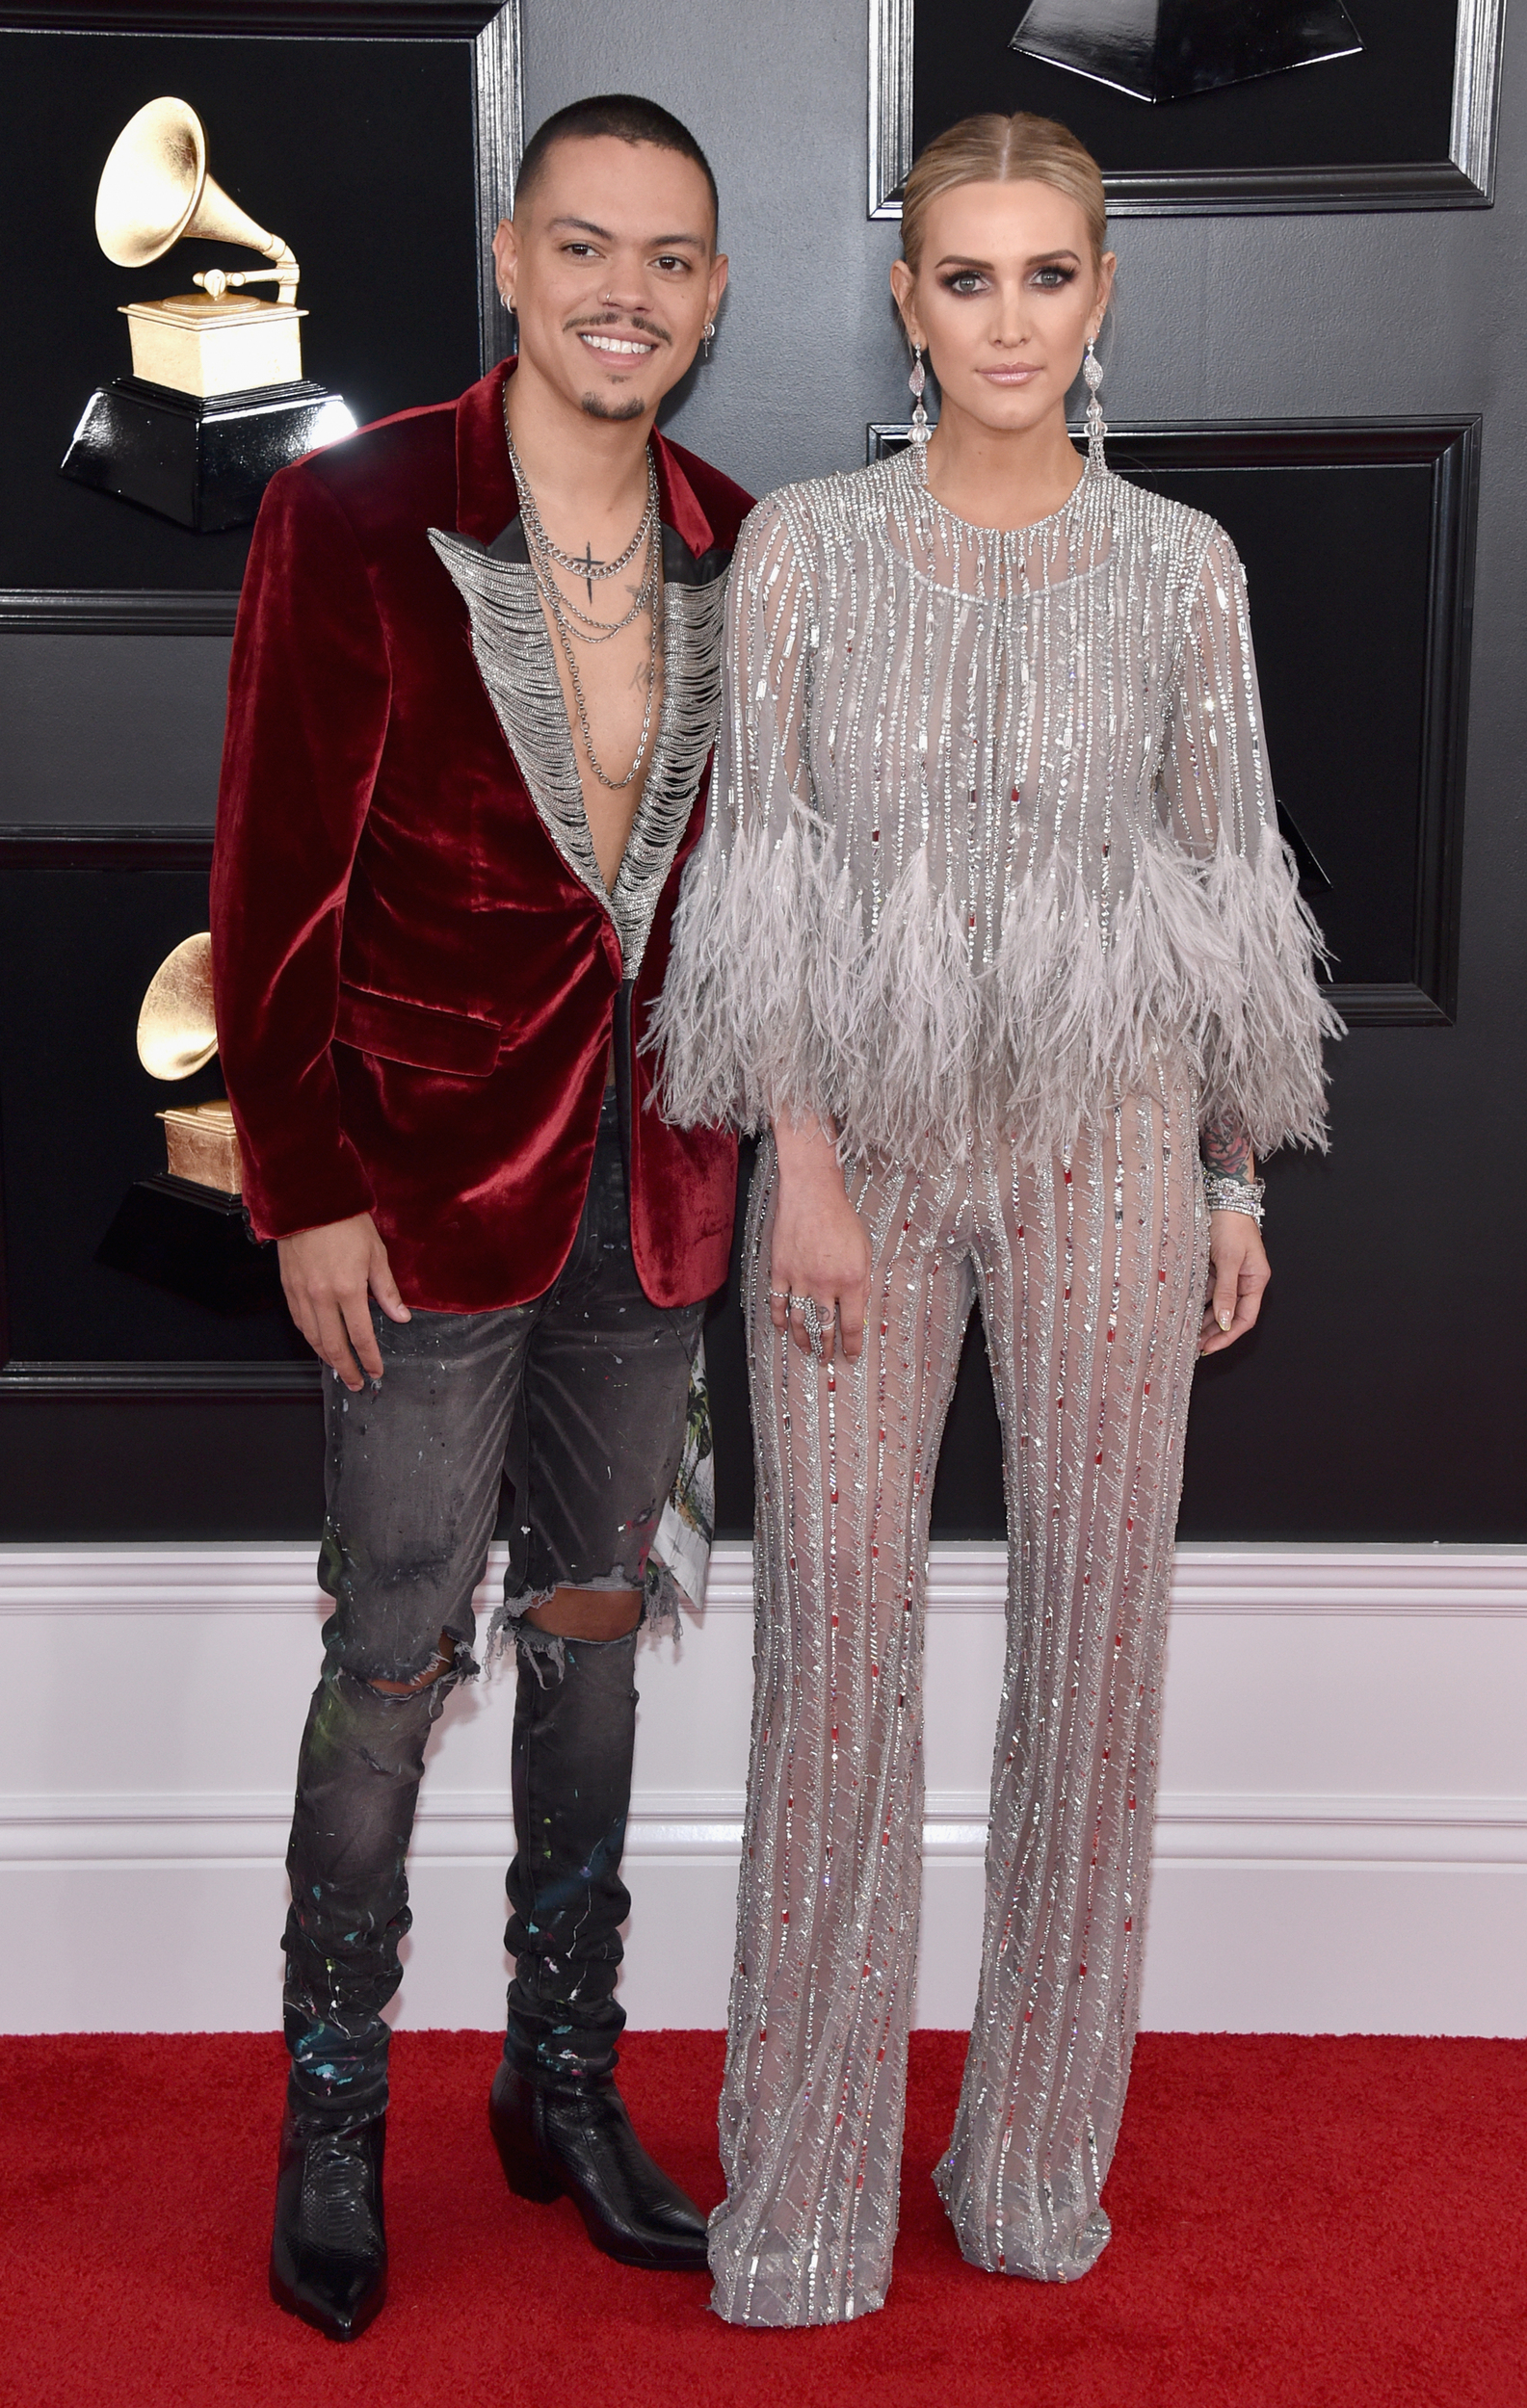 Ashlee Simpson s outfit looks like it started as a jumpsuit, added legs, and sprouted feathers. Evan Ross appears to have forgotten his shirt.